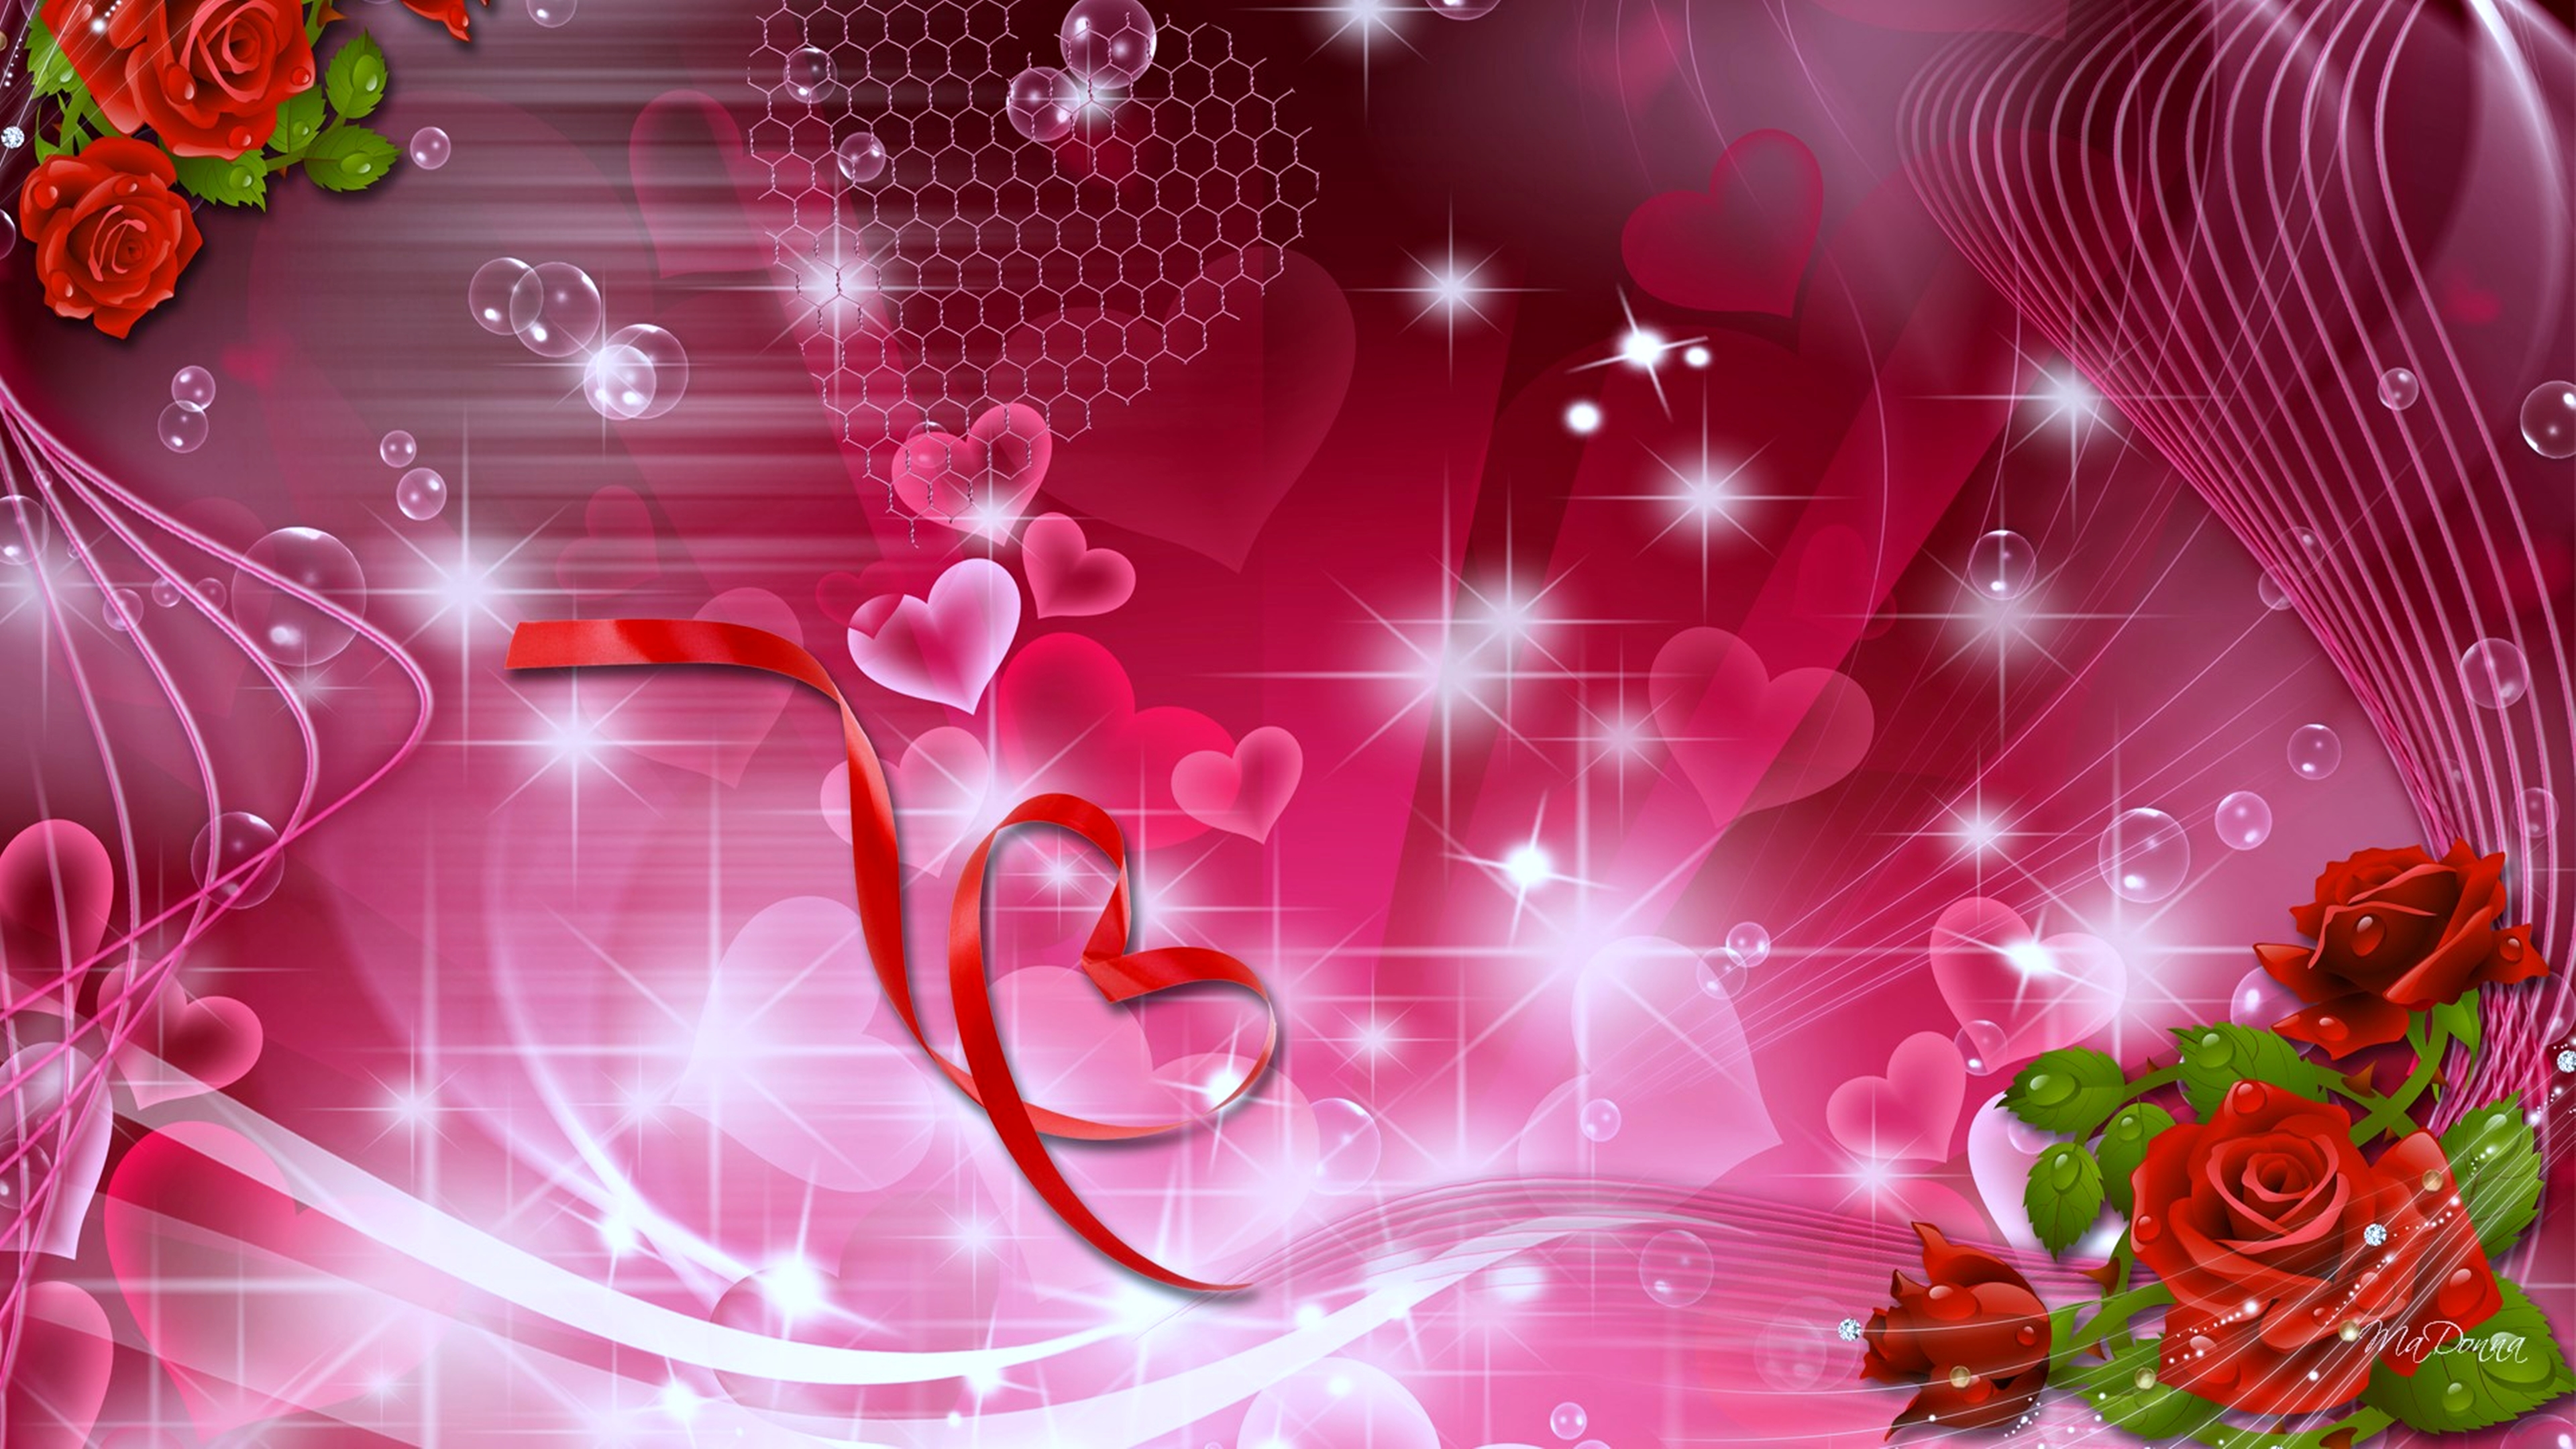 Love And Romance Wallpapers With Quotes Artistic Love Romance Heart Rose Wallpaper